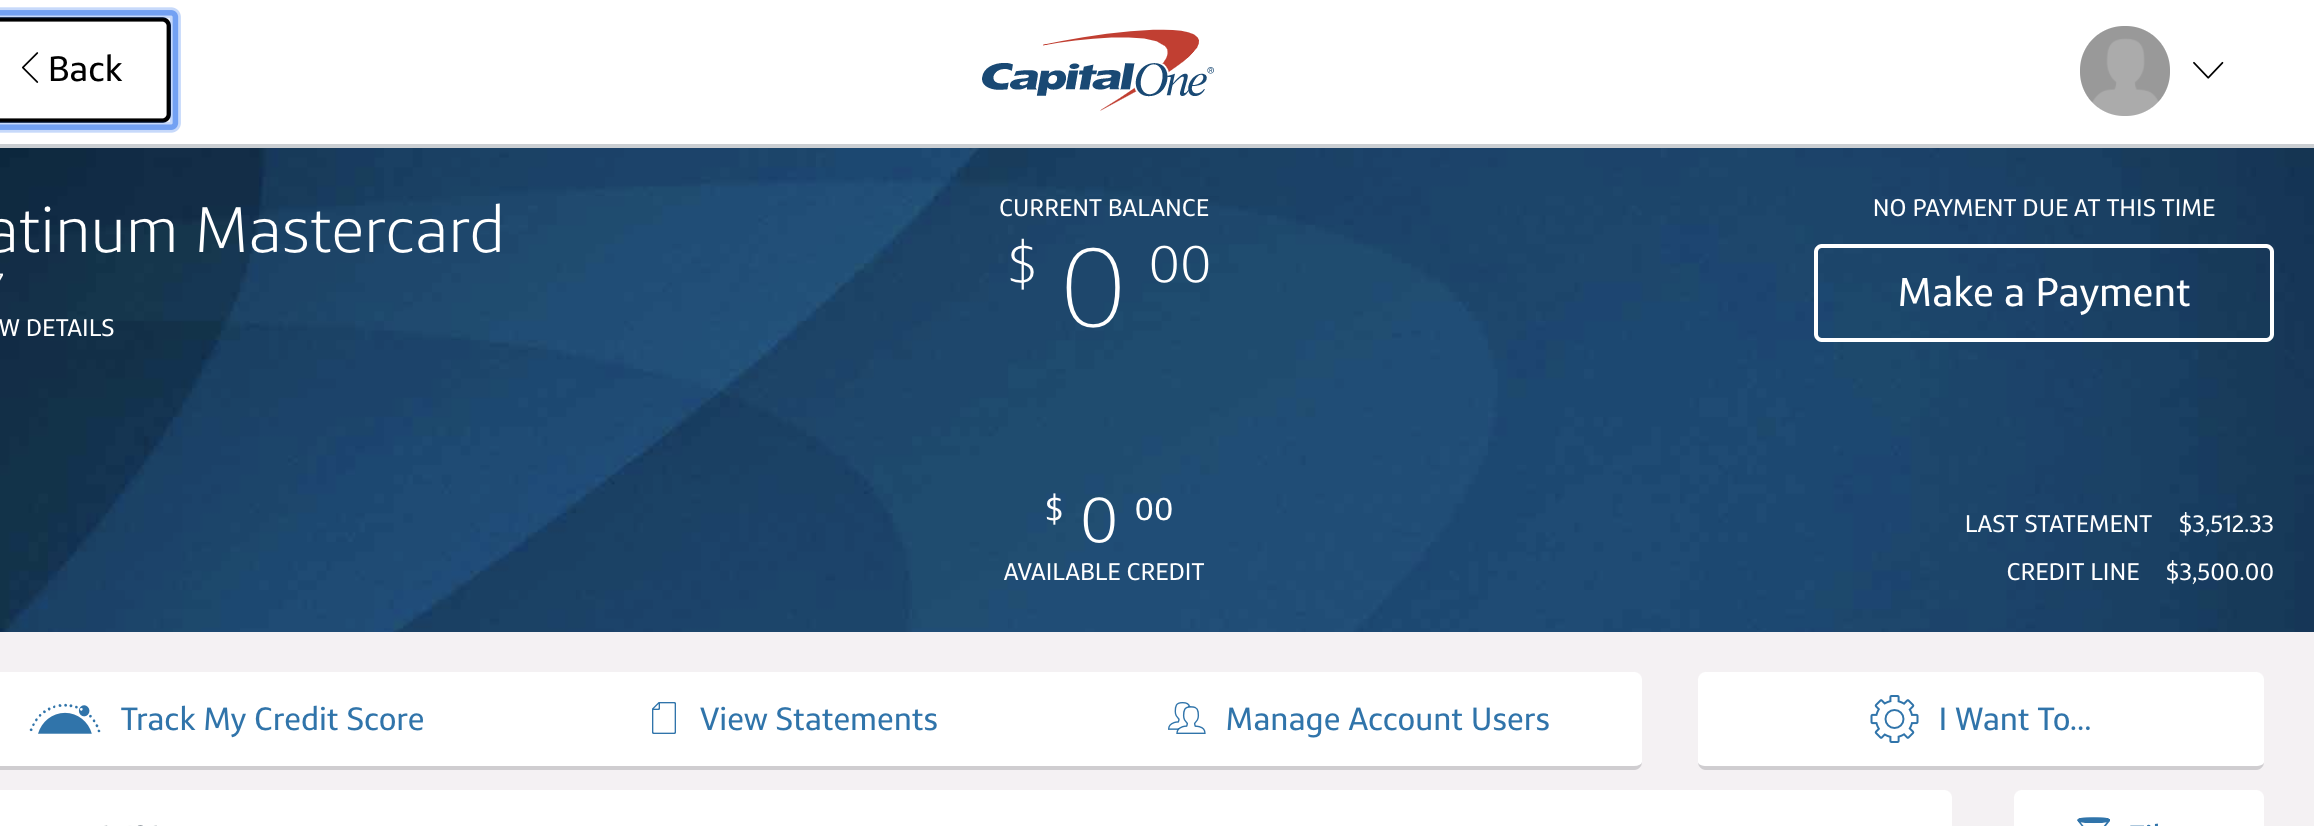 capitalone after payment available credit show zer - myFICO